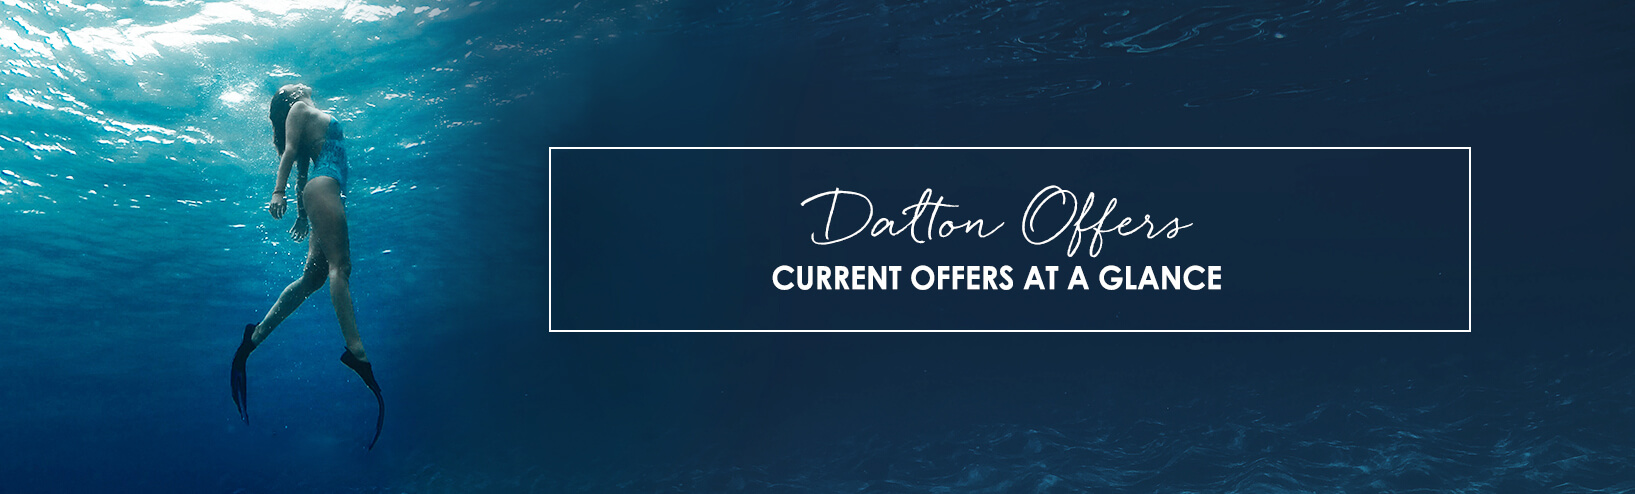 Current offers at a glance